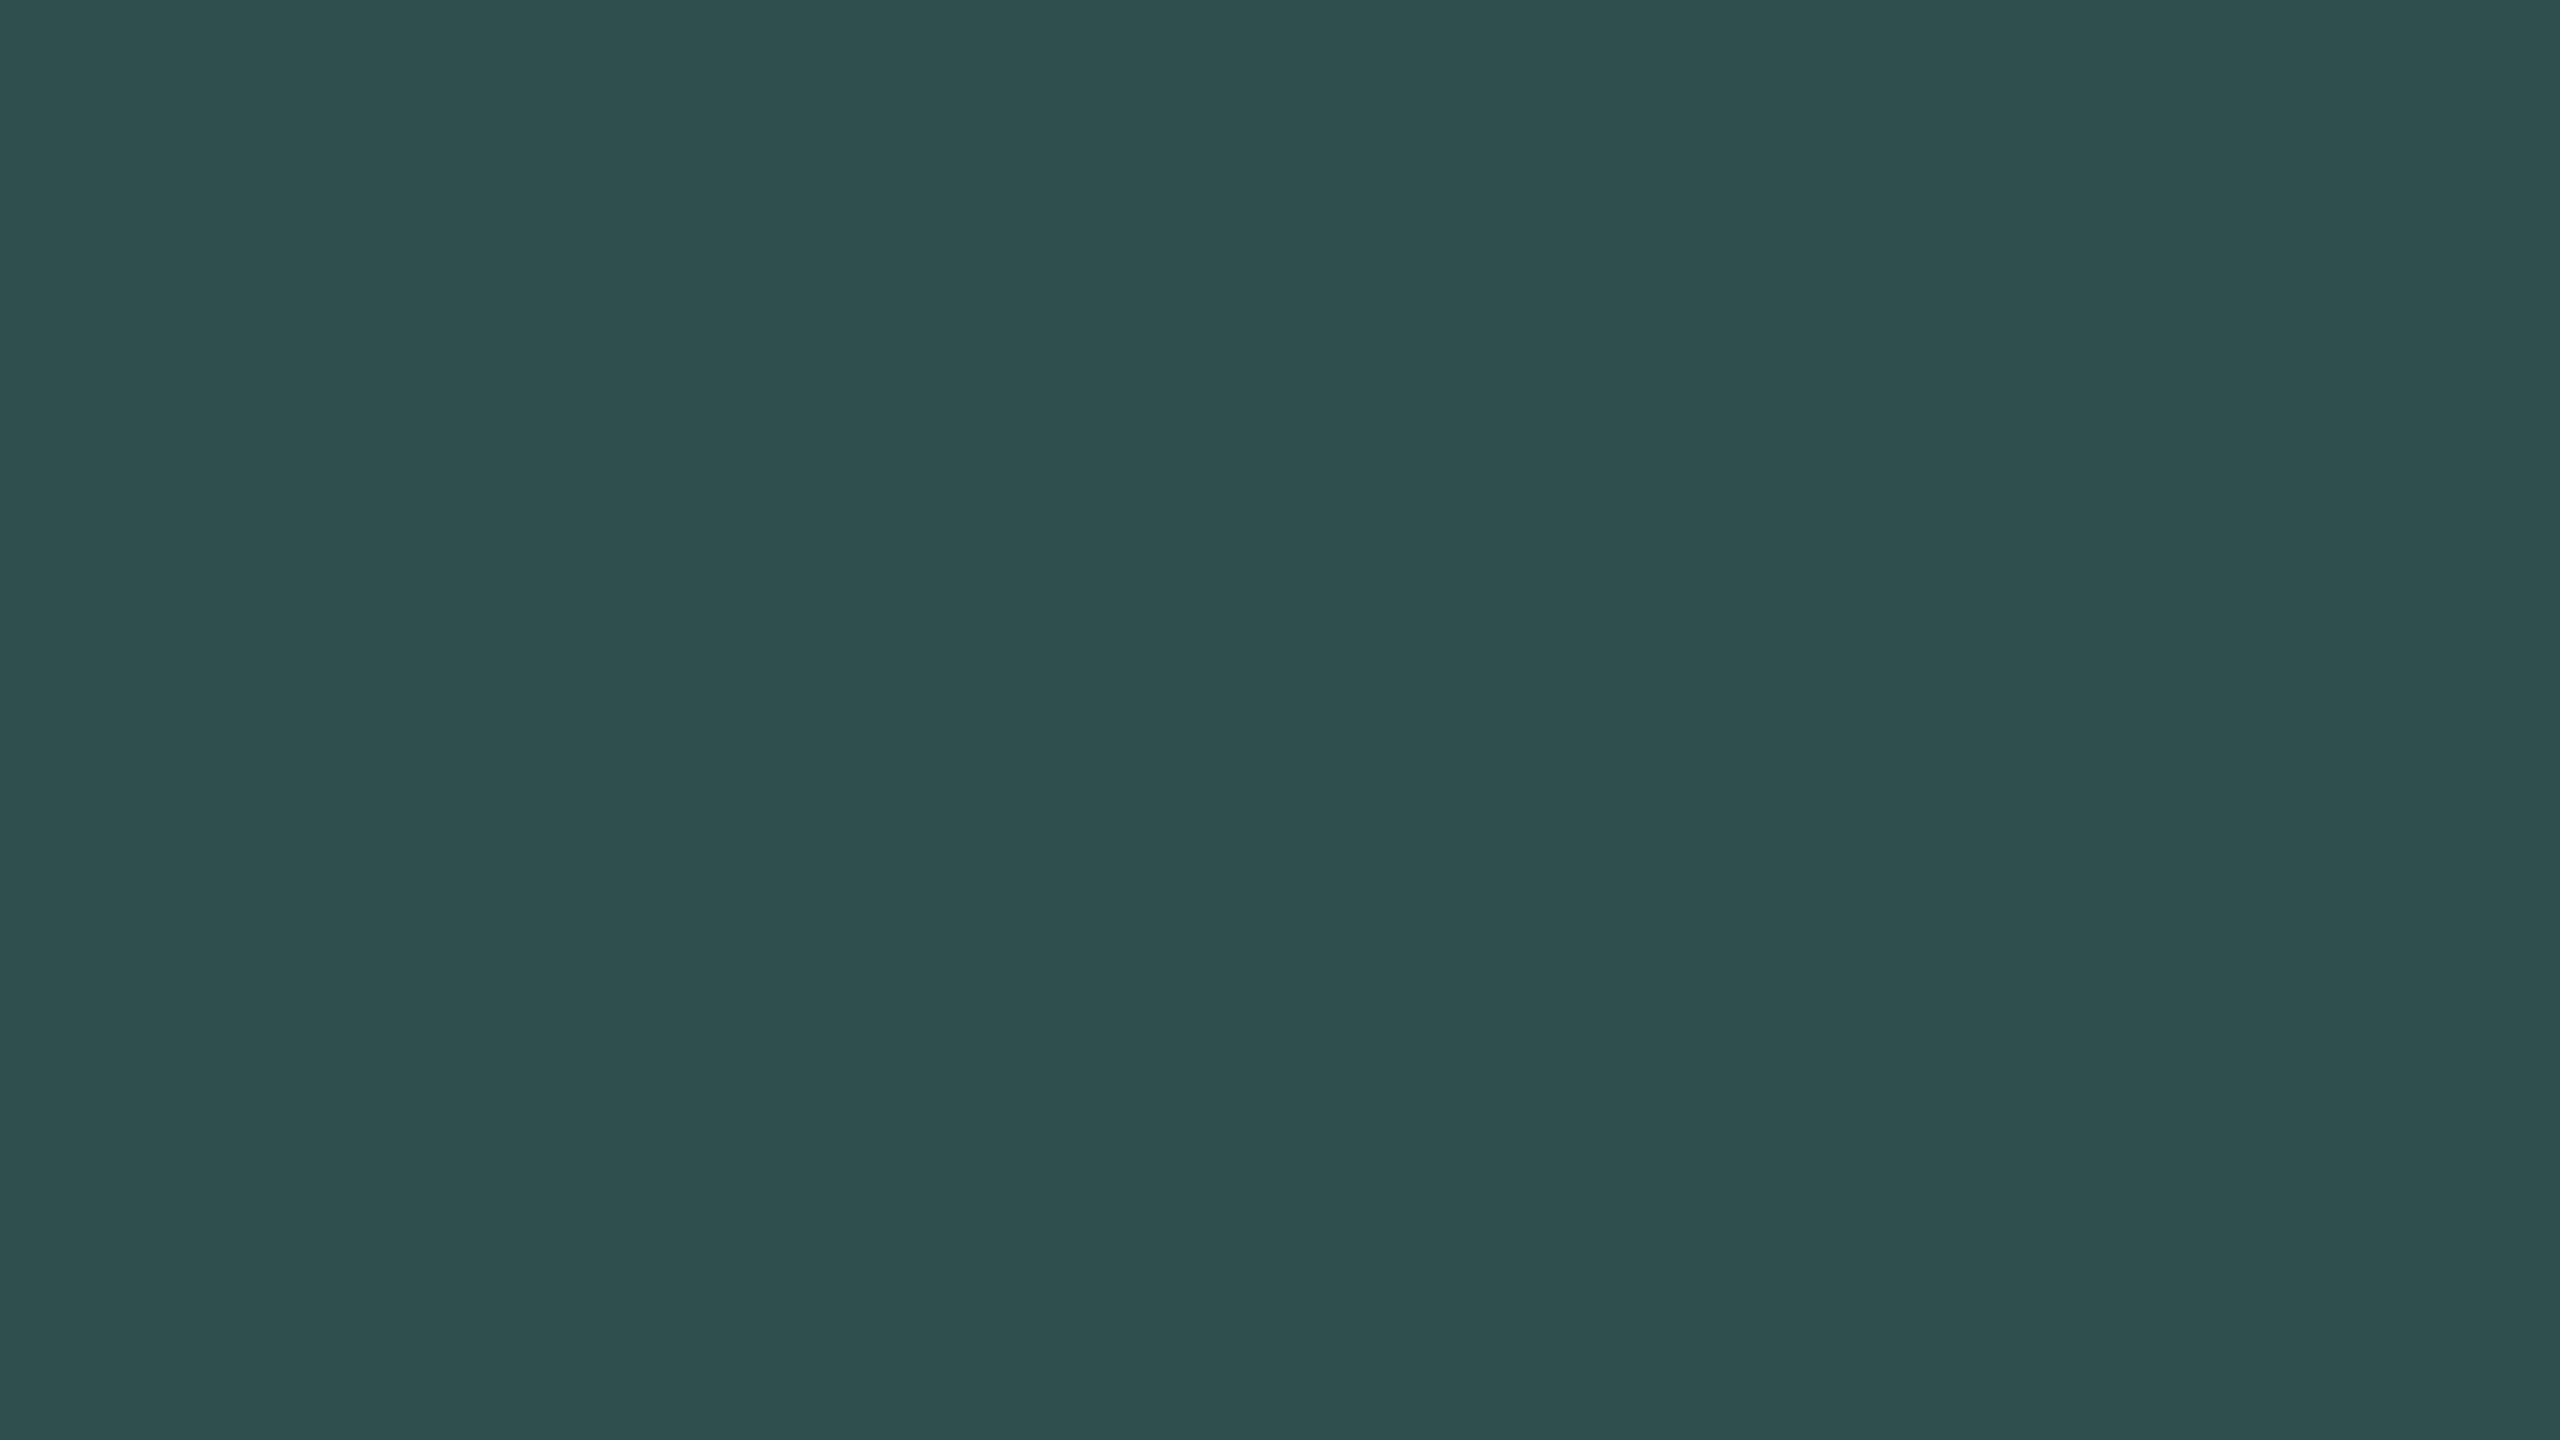 2560x1440 Dark Slate Gray Solid Color Background